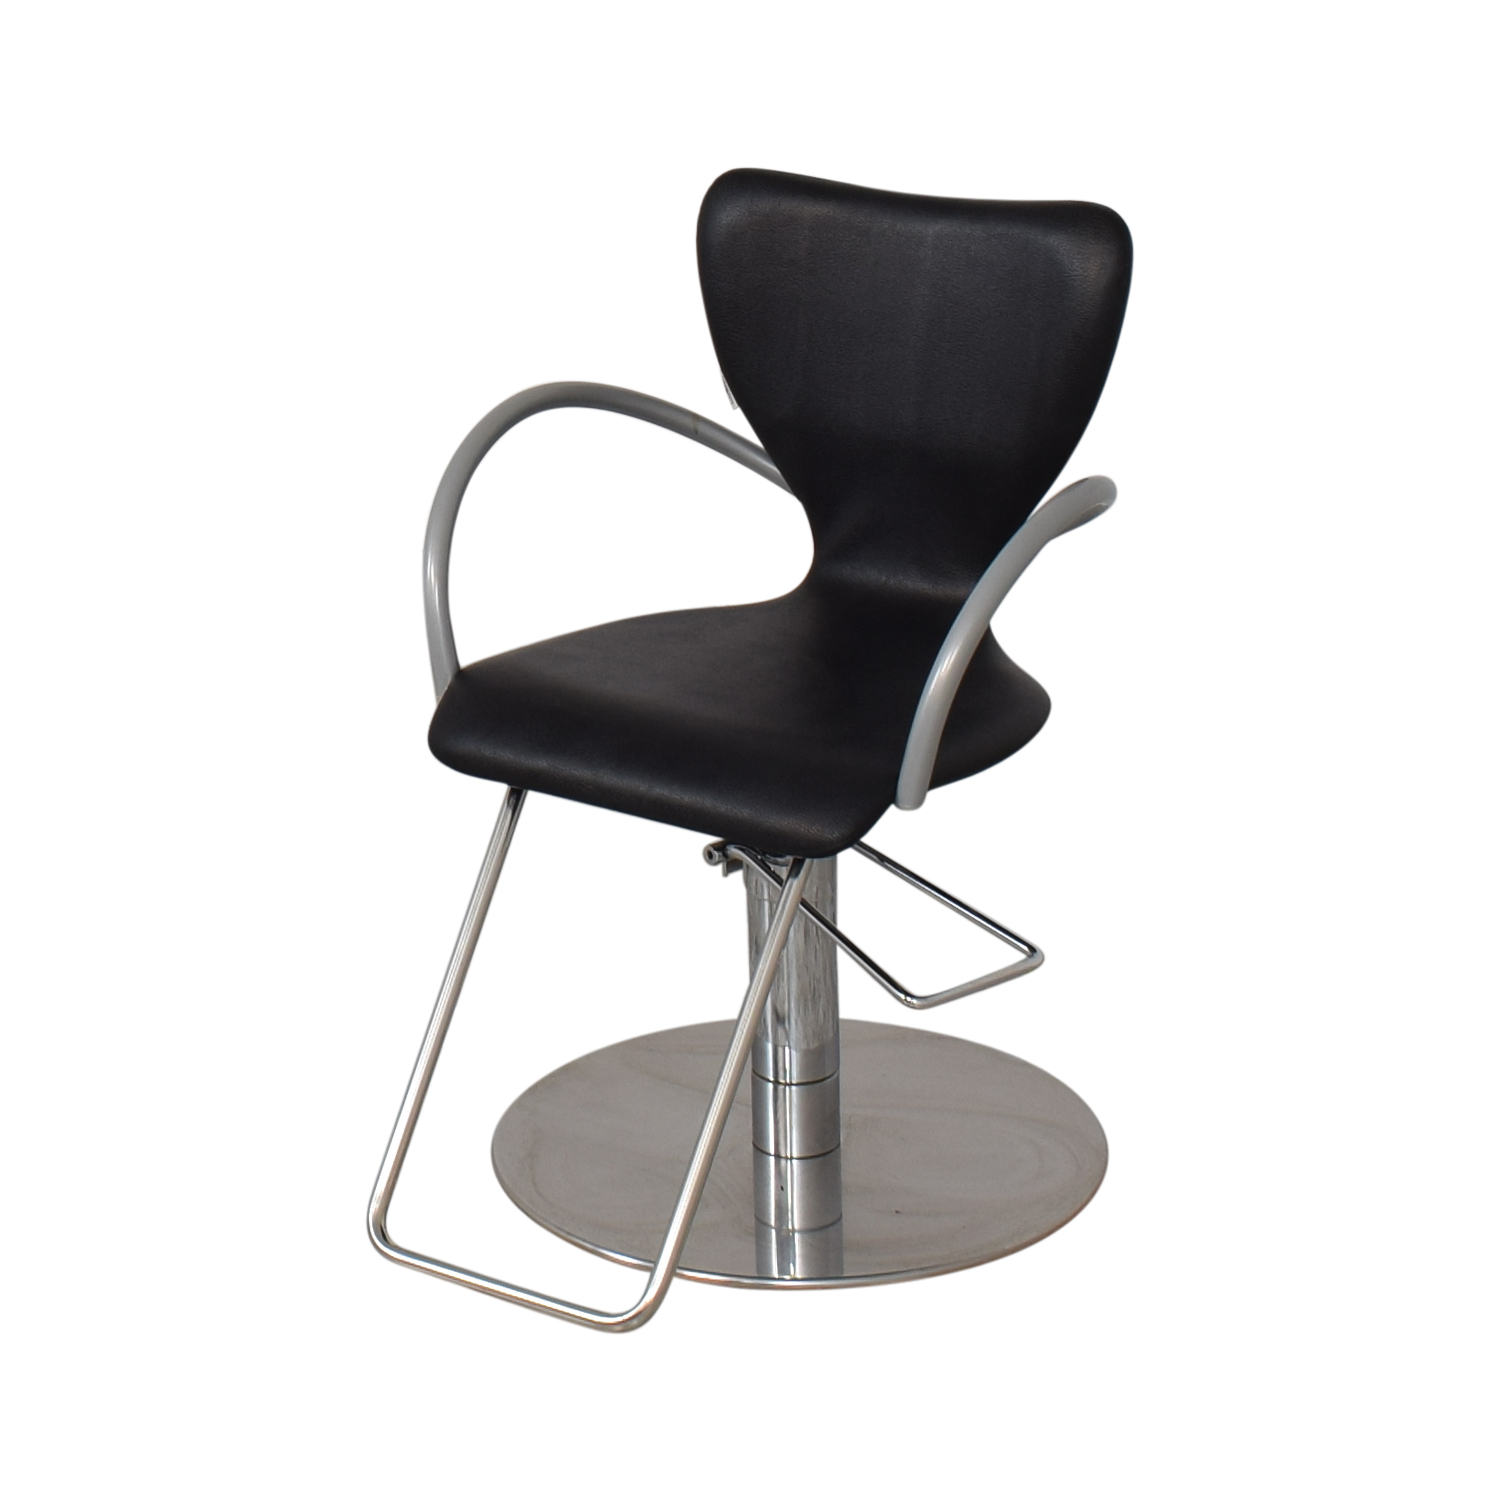 buy Gamma Bross Folda Parrot Styling Chair Gamma & Bross Chairs